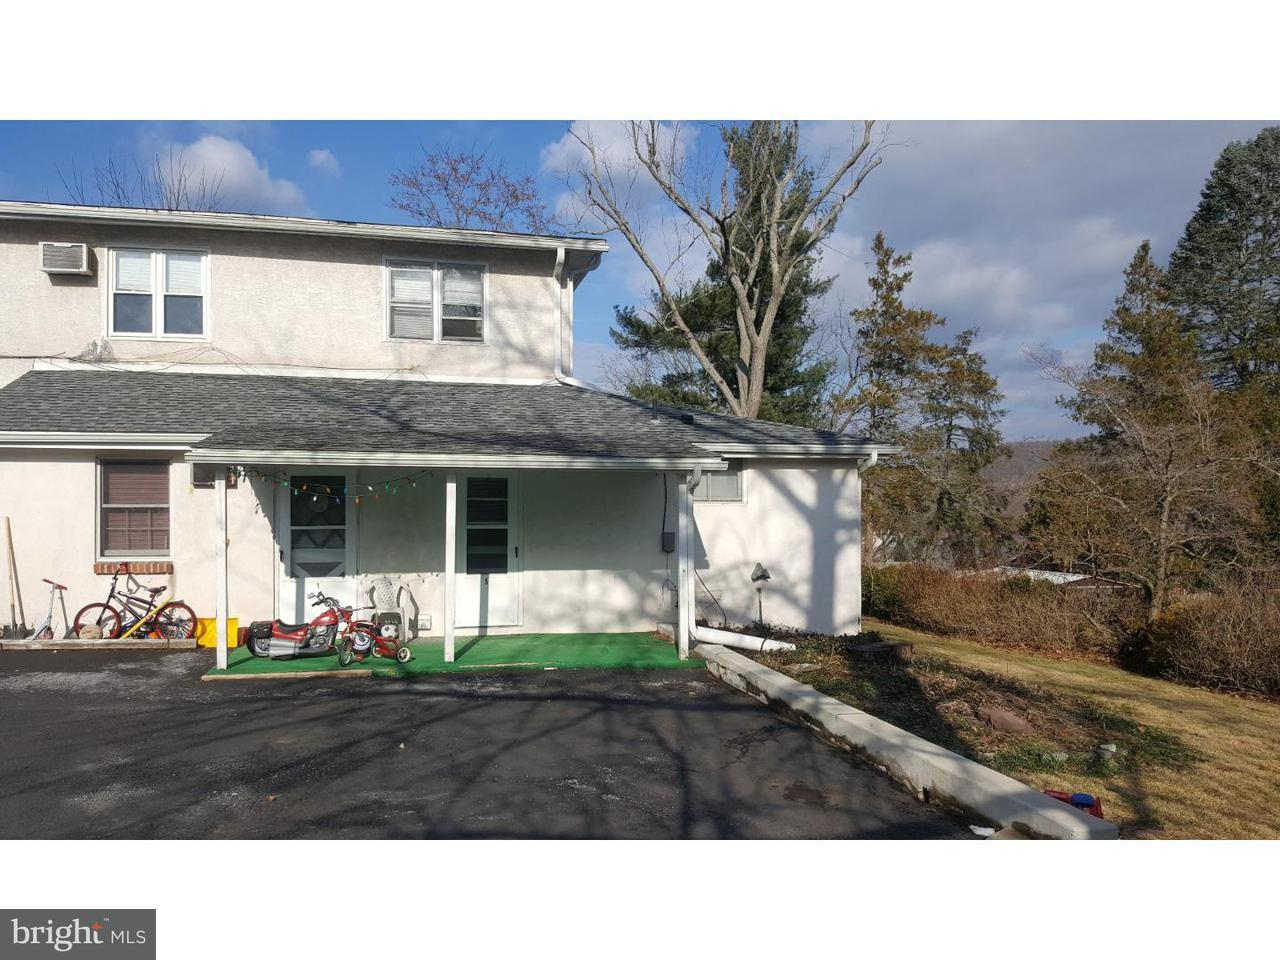 Single Family Home for Rent at 150 2ND ST #5 Schwenksville, Pennsylvania 19473 United States